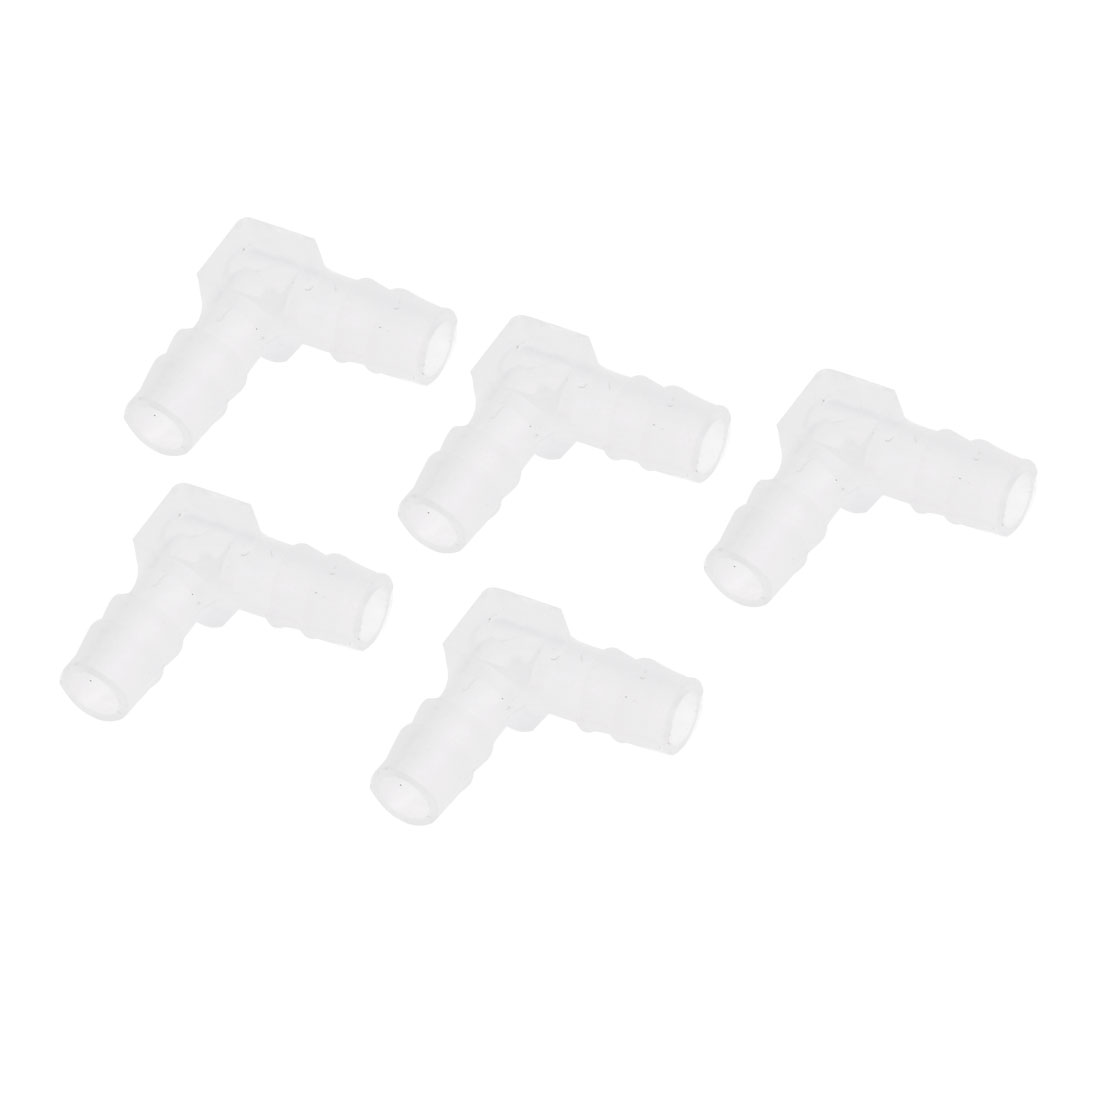 5 Pcs L Shaped Air Hose Tubet Filers Connectors Adapter for Aquarium